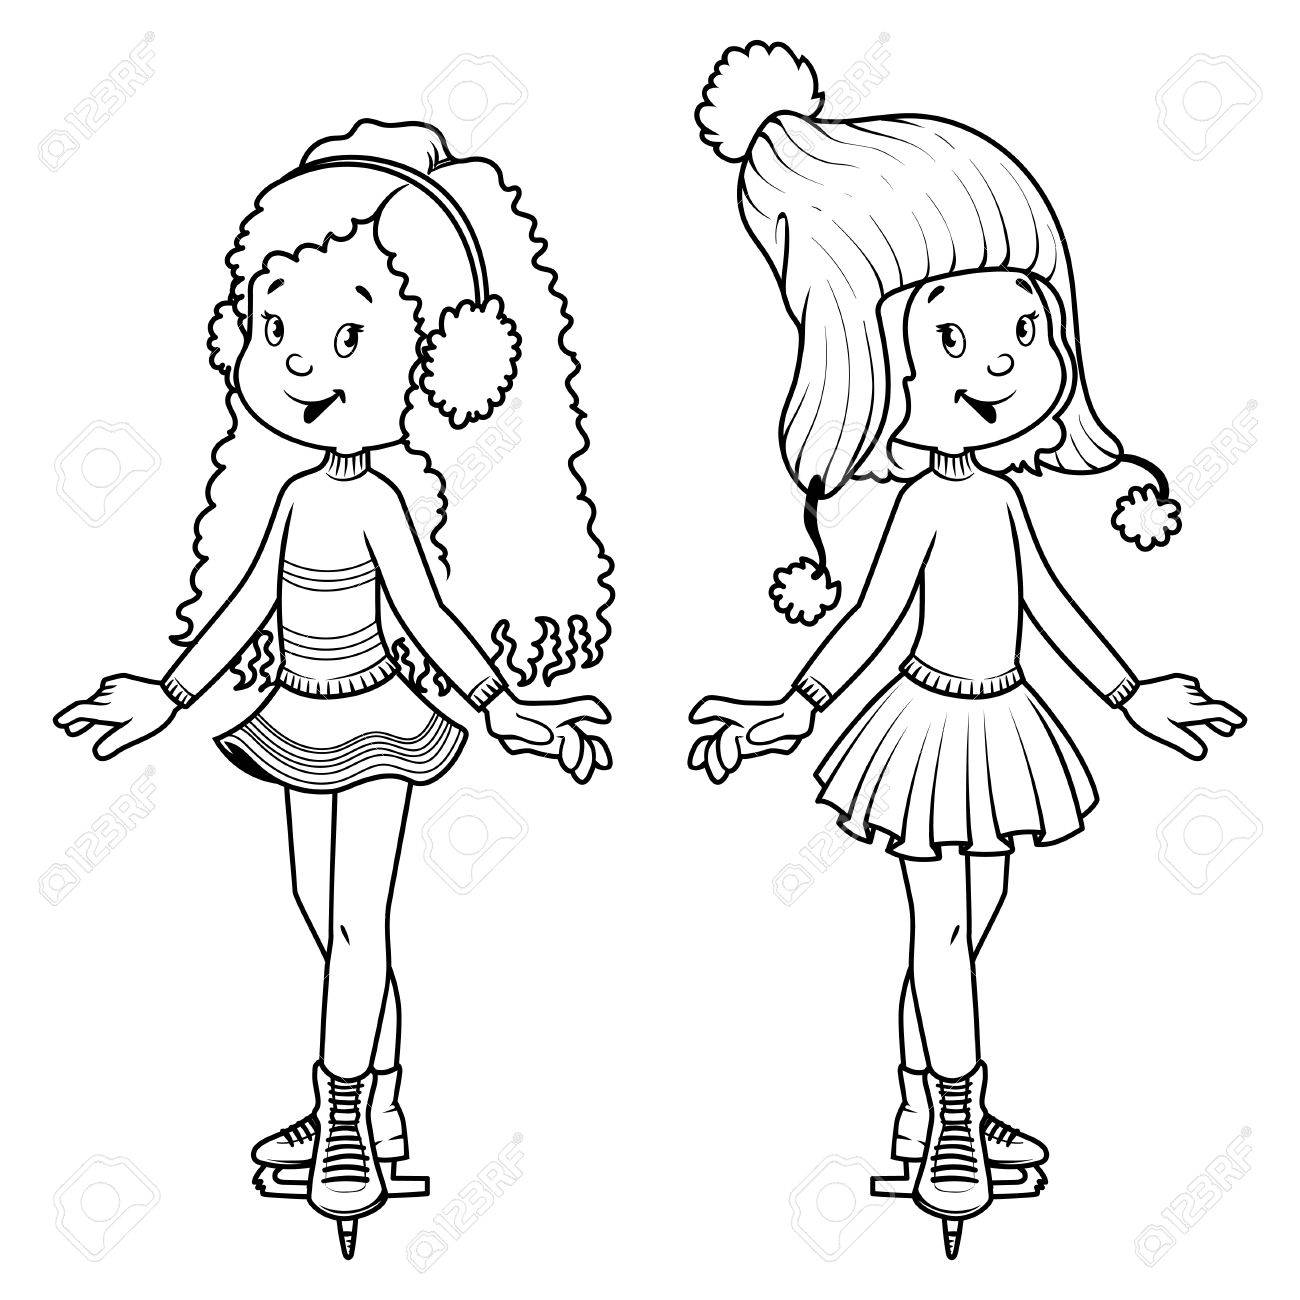 Two cute girls on skates. clip-art illustration. Coloring book